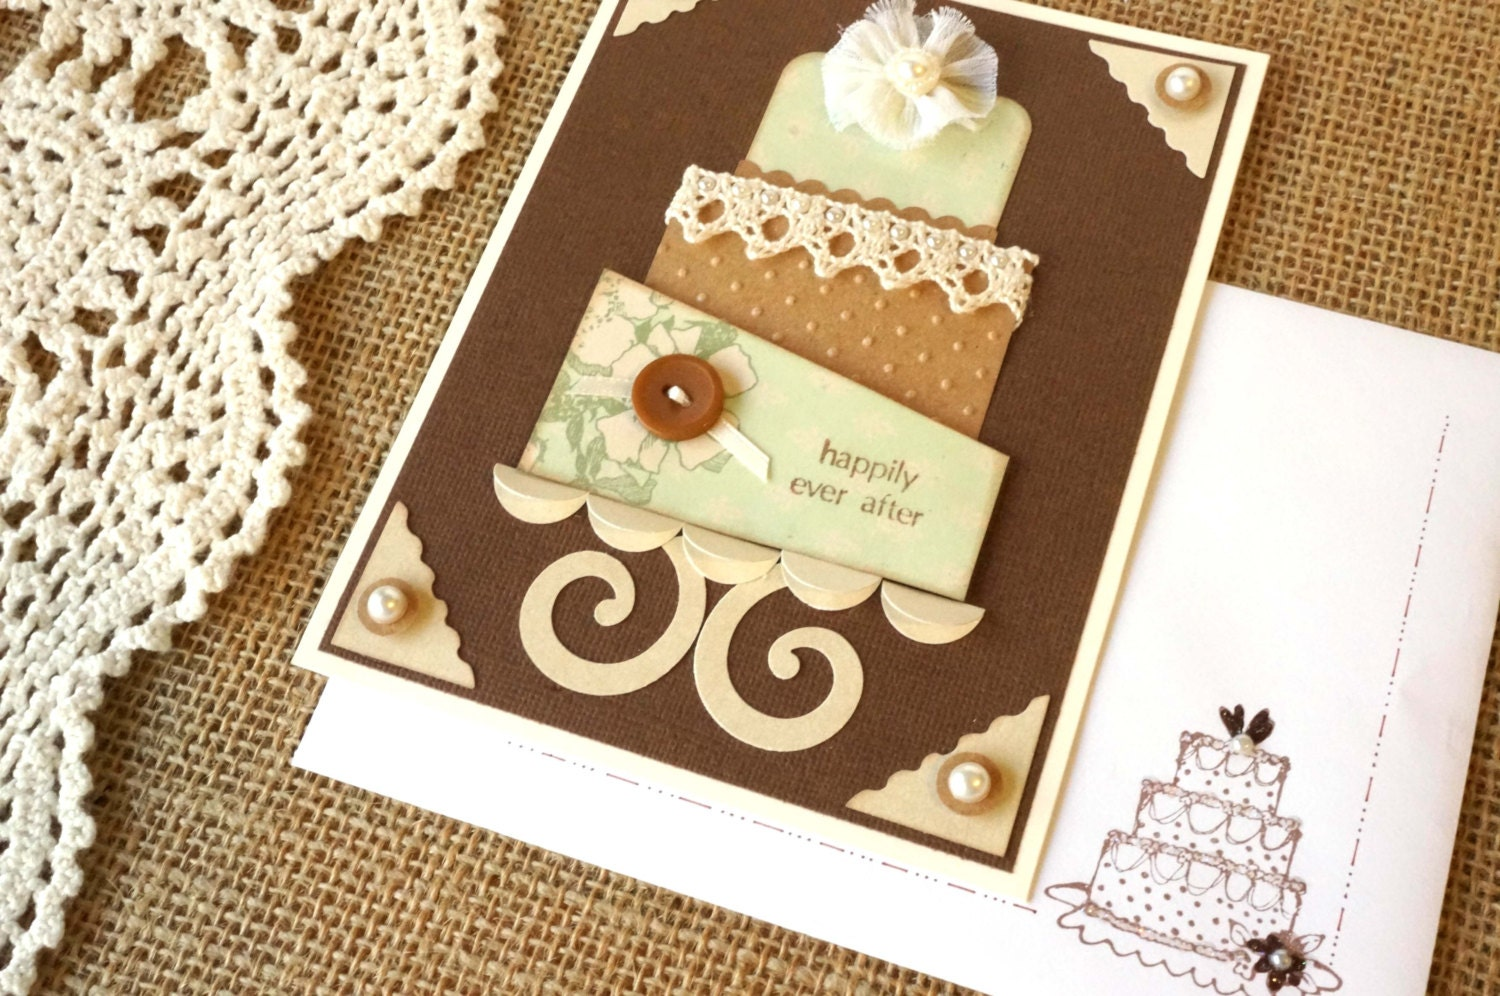 Wedding Gift Card Shower : Cake Wedding Gift Card Holder Bridal Shower by MelodysMoments